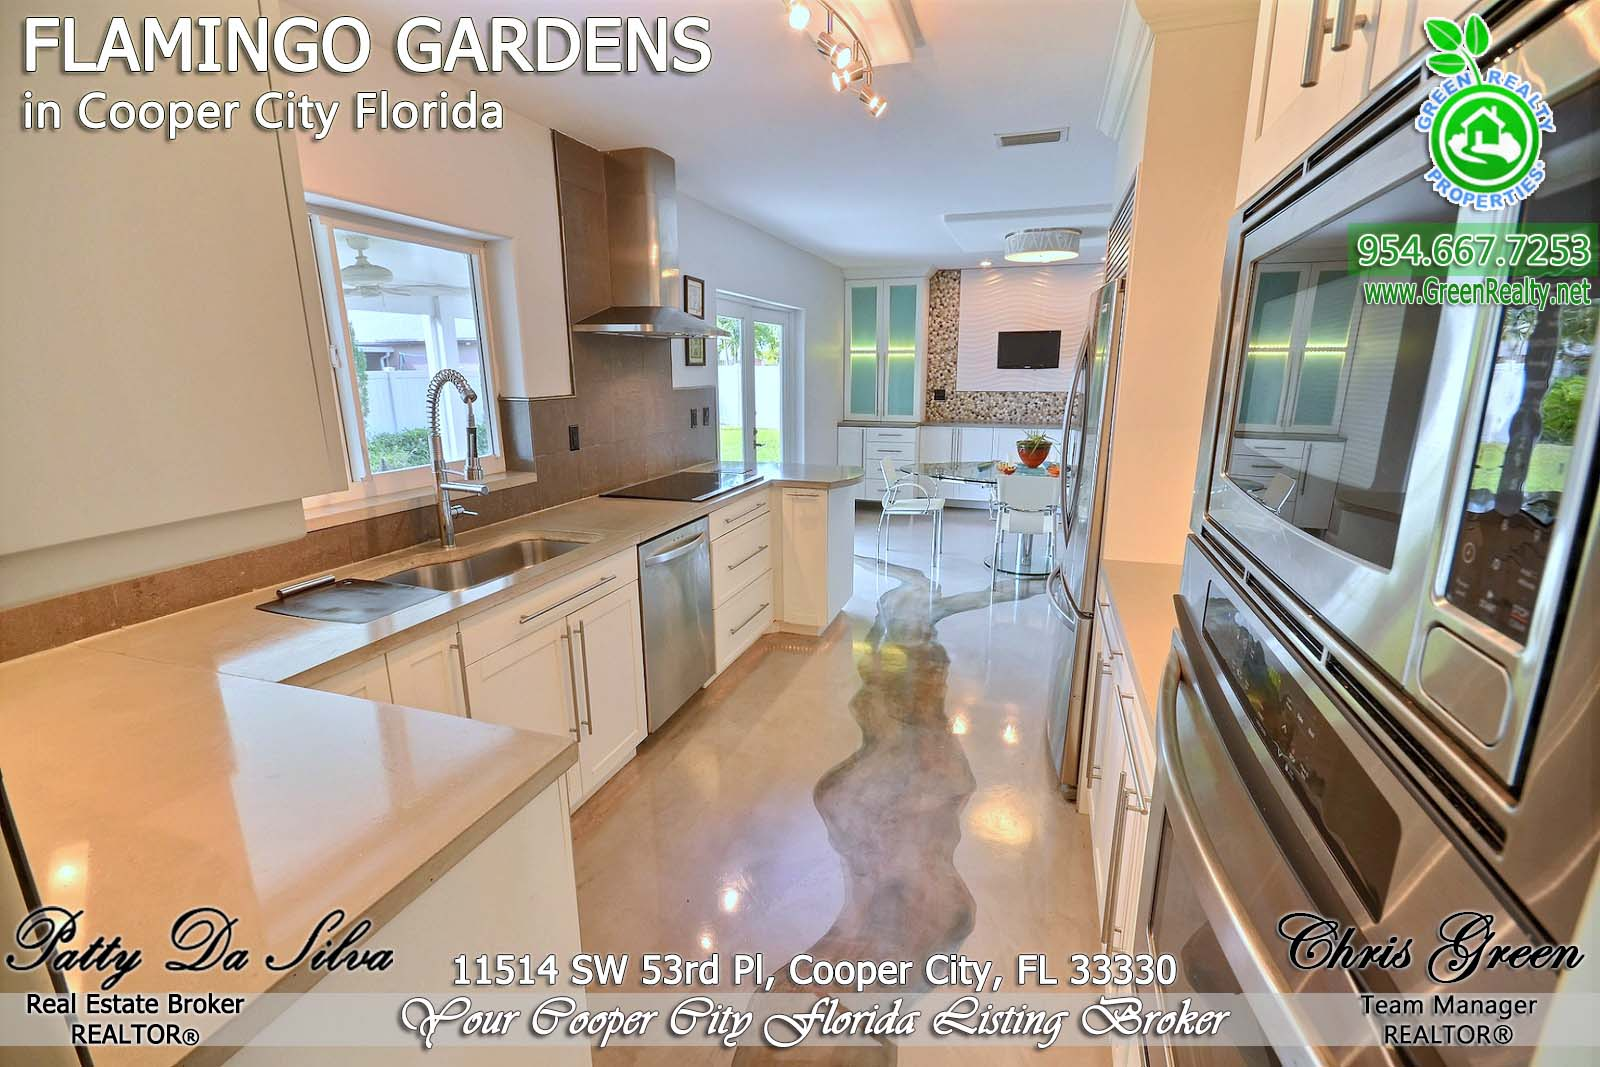 17 Flamingo Gardens Cooper City Homes For Sale (14)_1